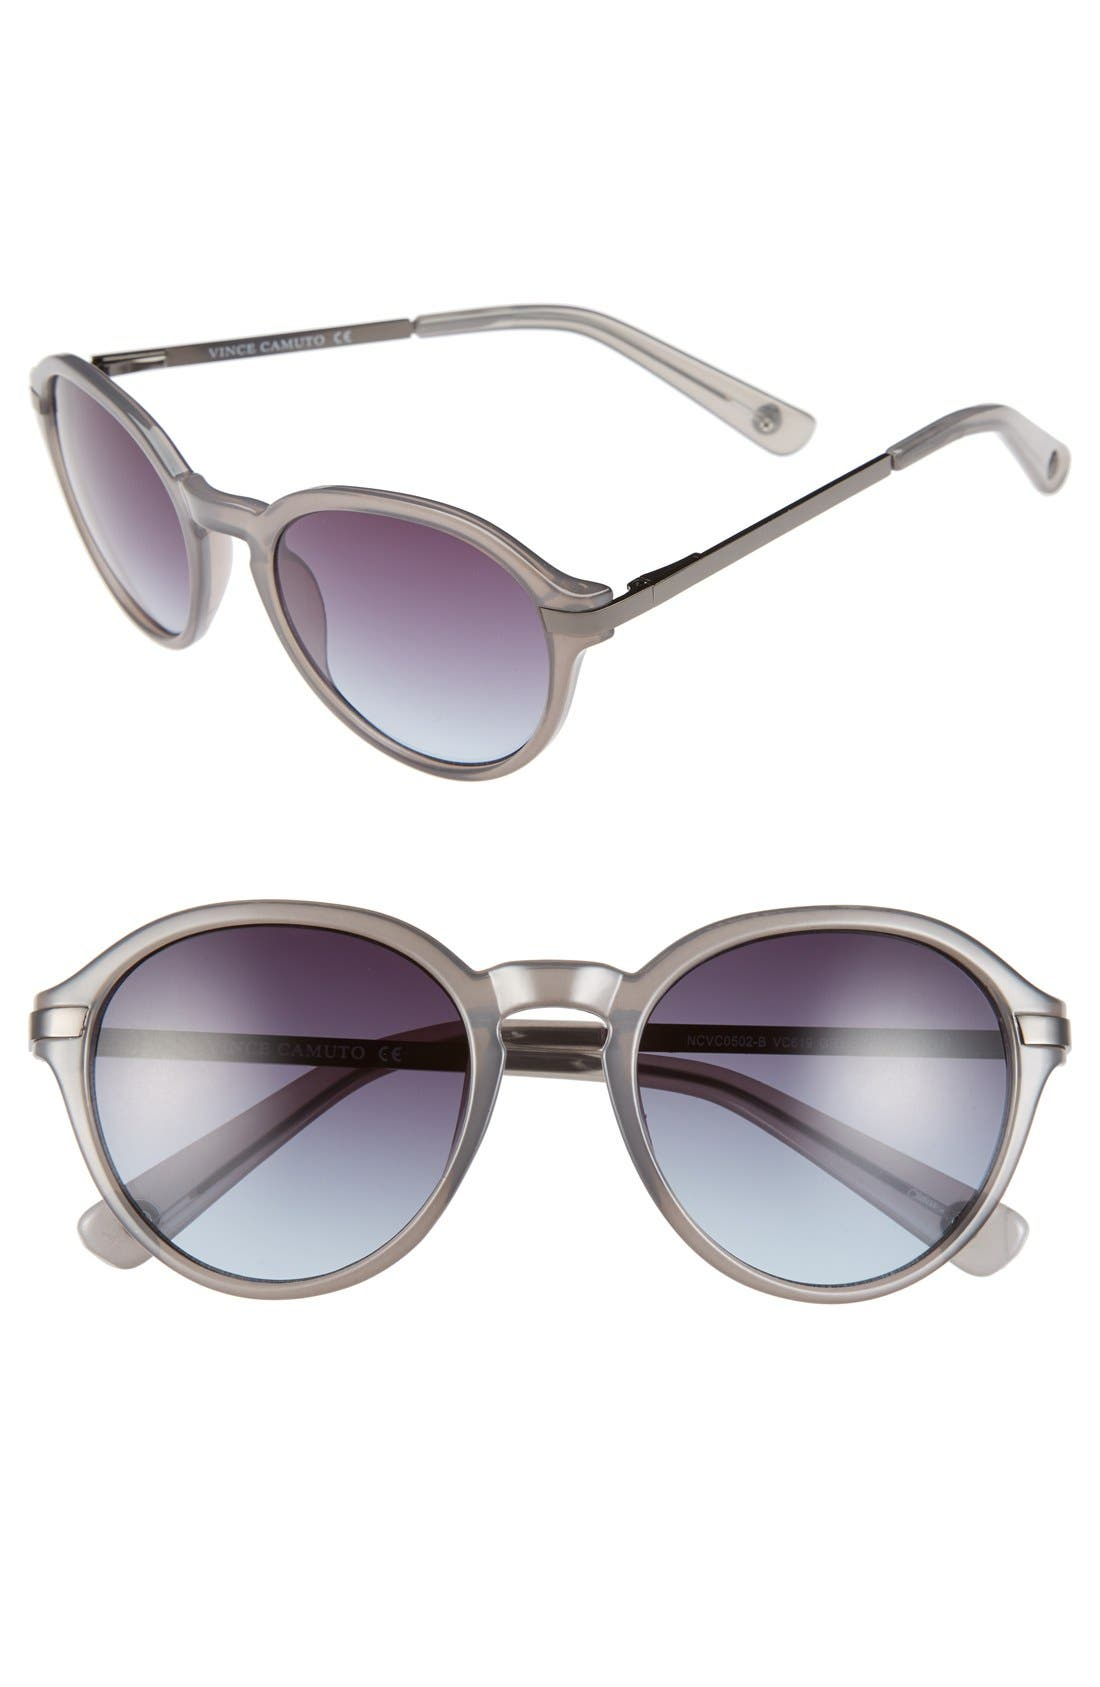 Alternate Image 1 Selected - Vince Camuto 52mm Round Sunglasses